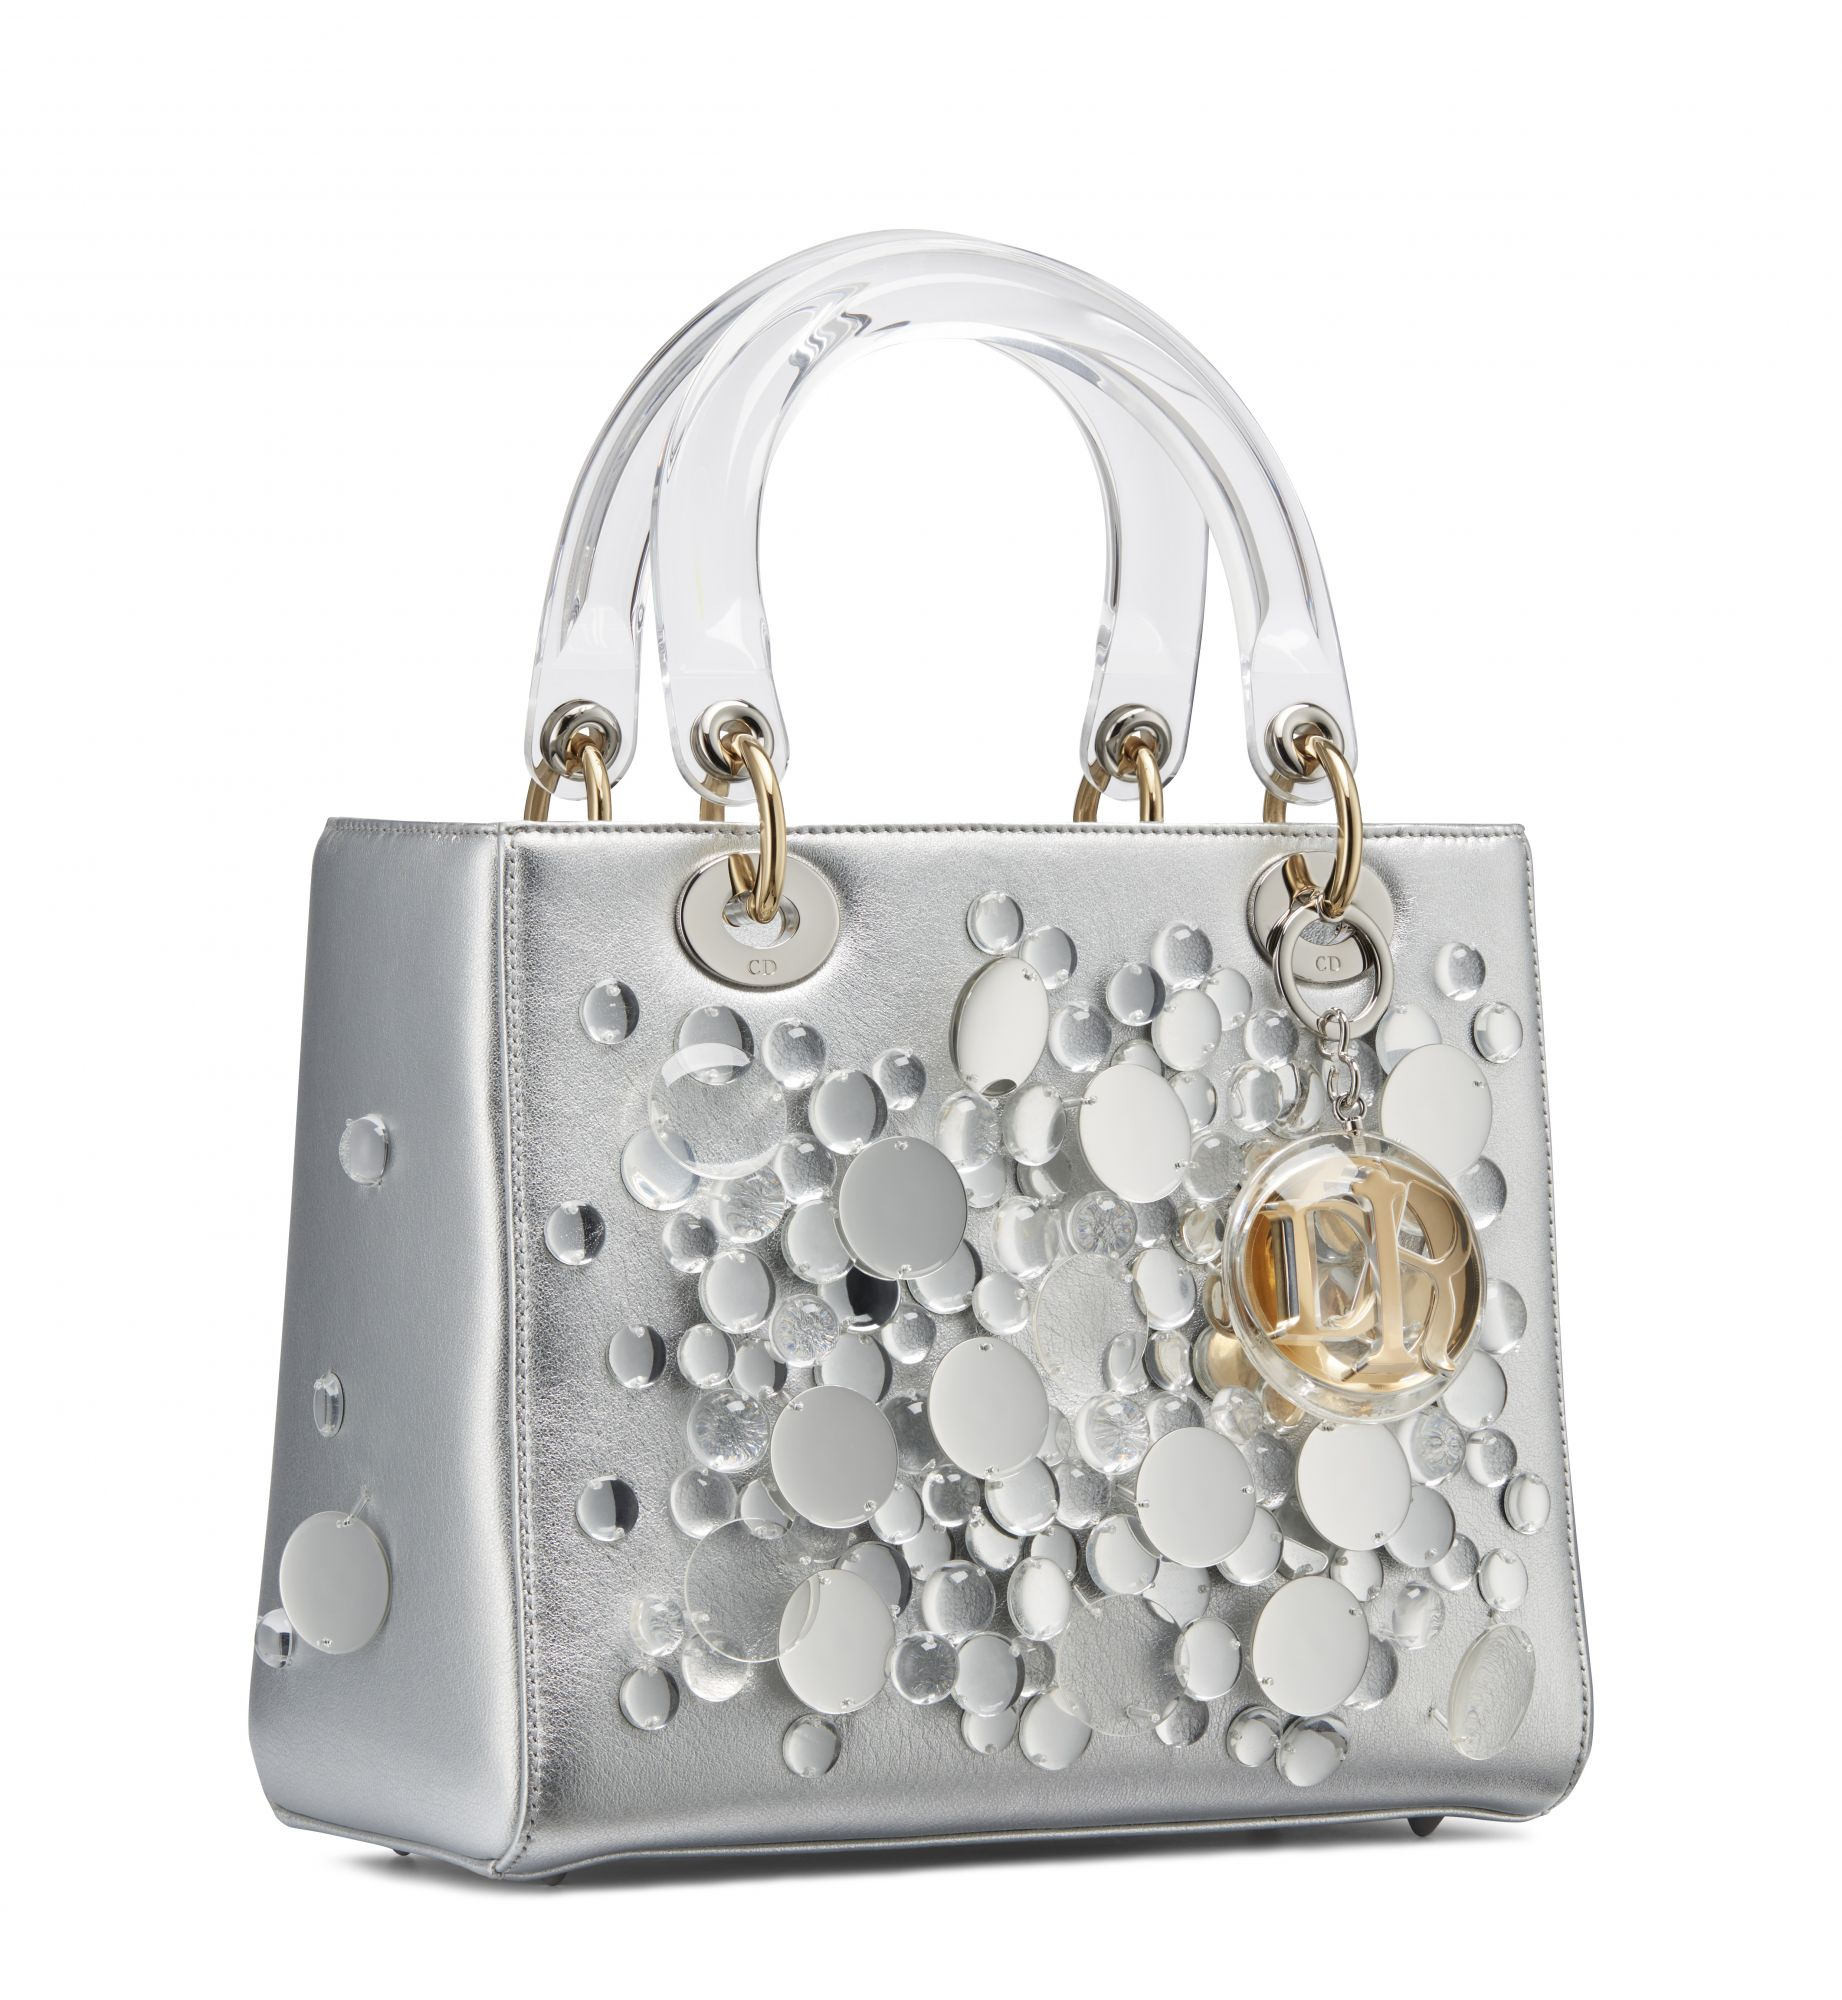 Dior Invites 11 Women Artists To Reimagine The Iconic Lady Dior Bag ... 77d0d81bae141